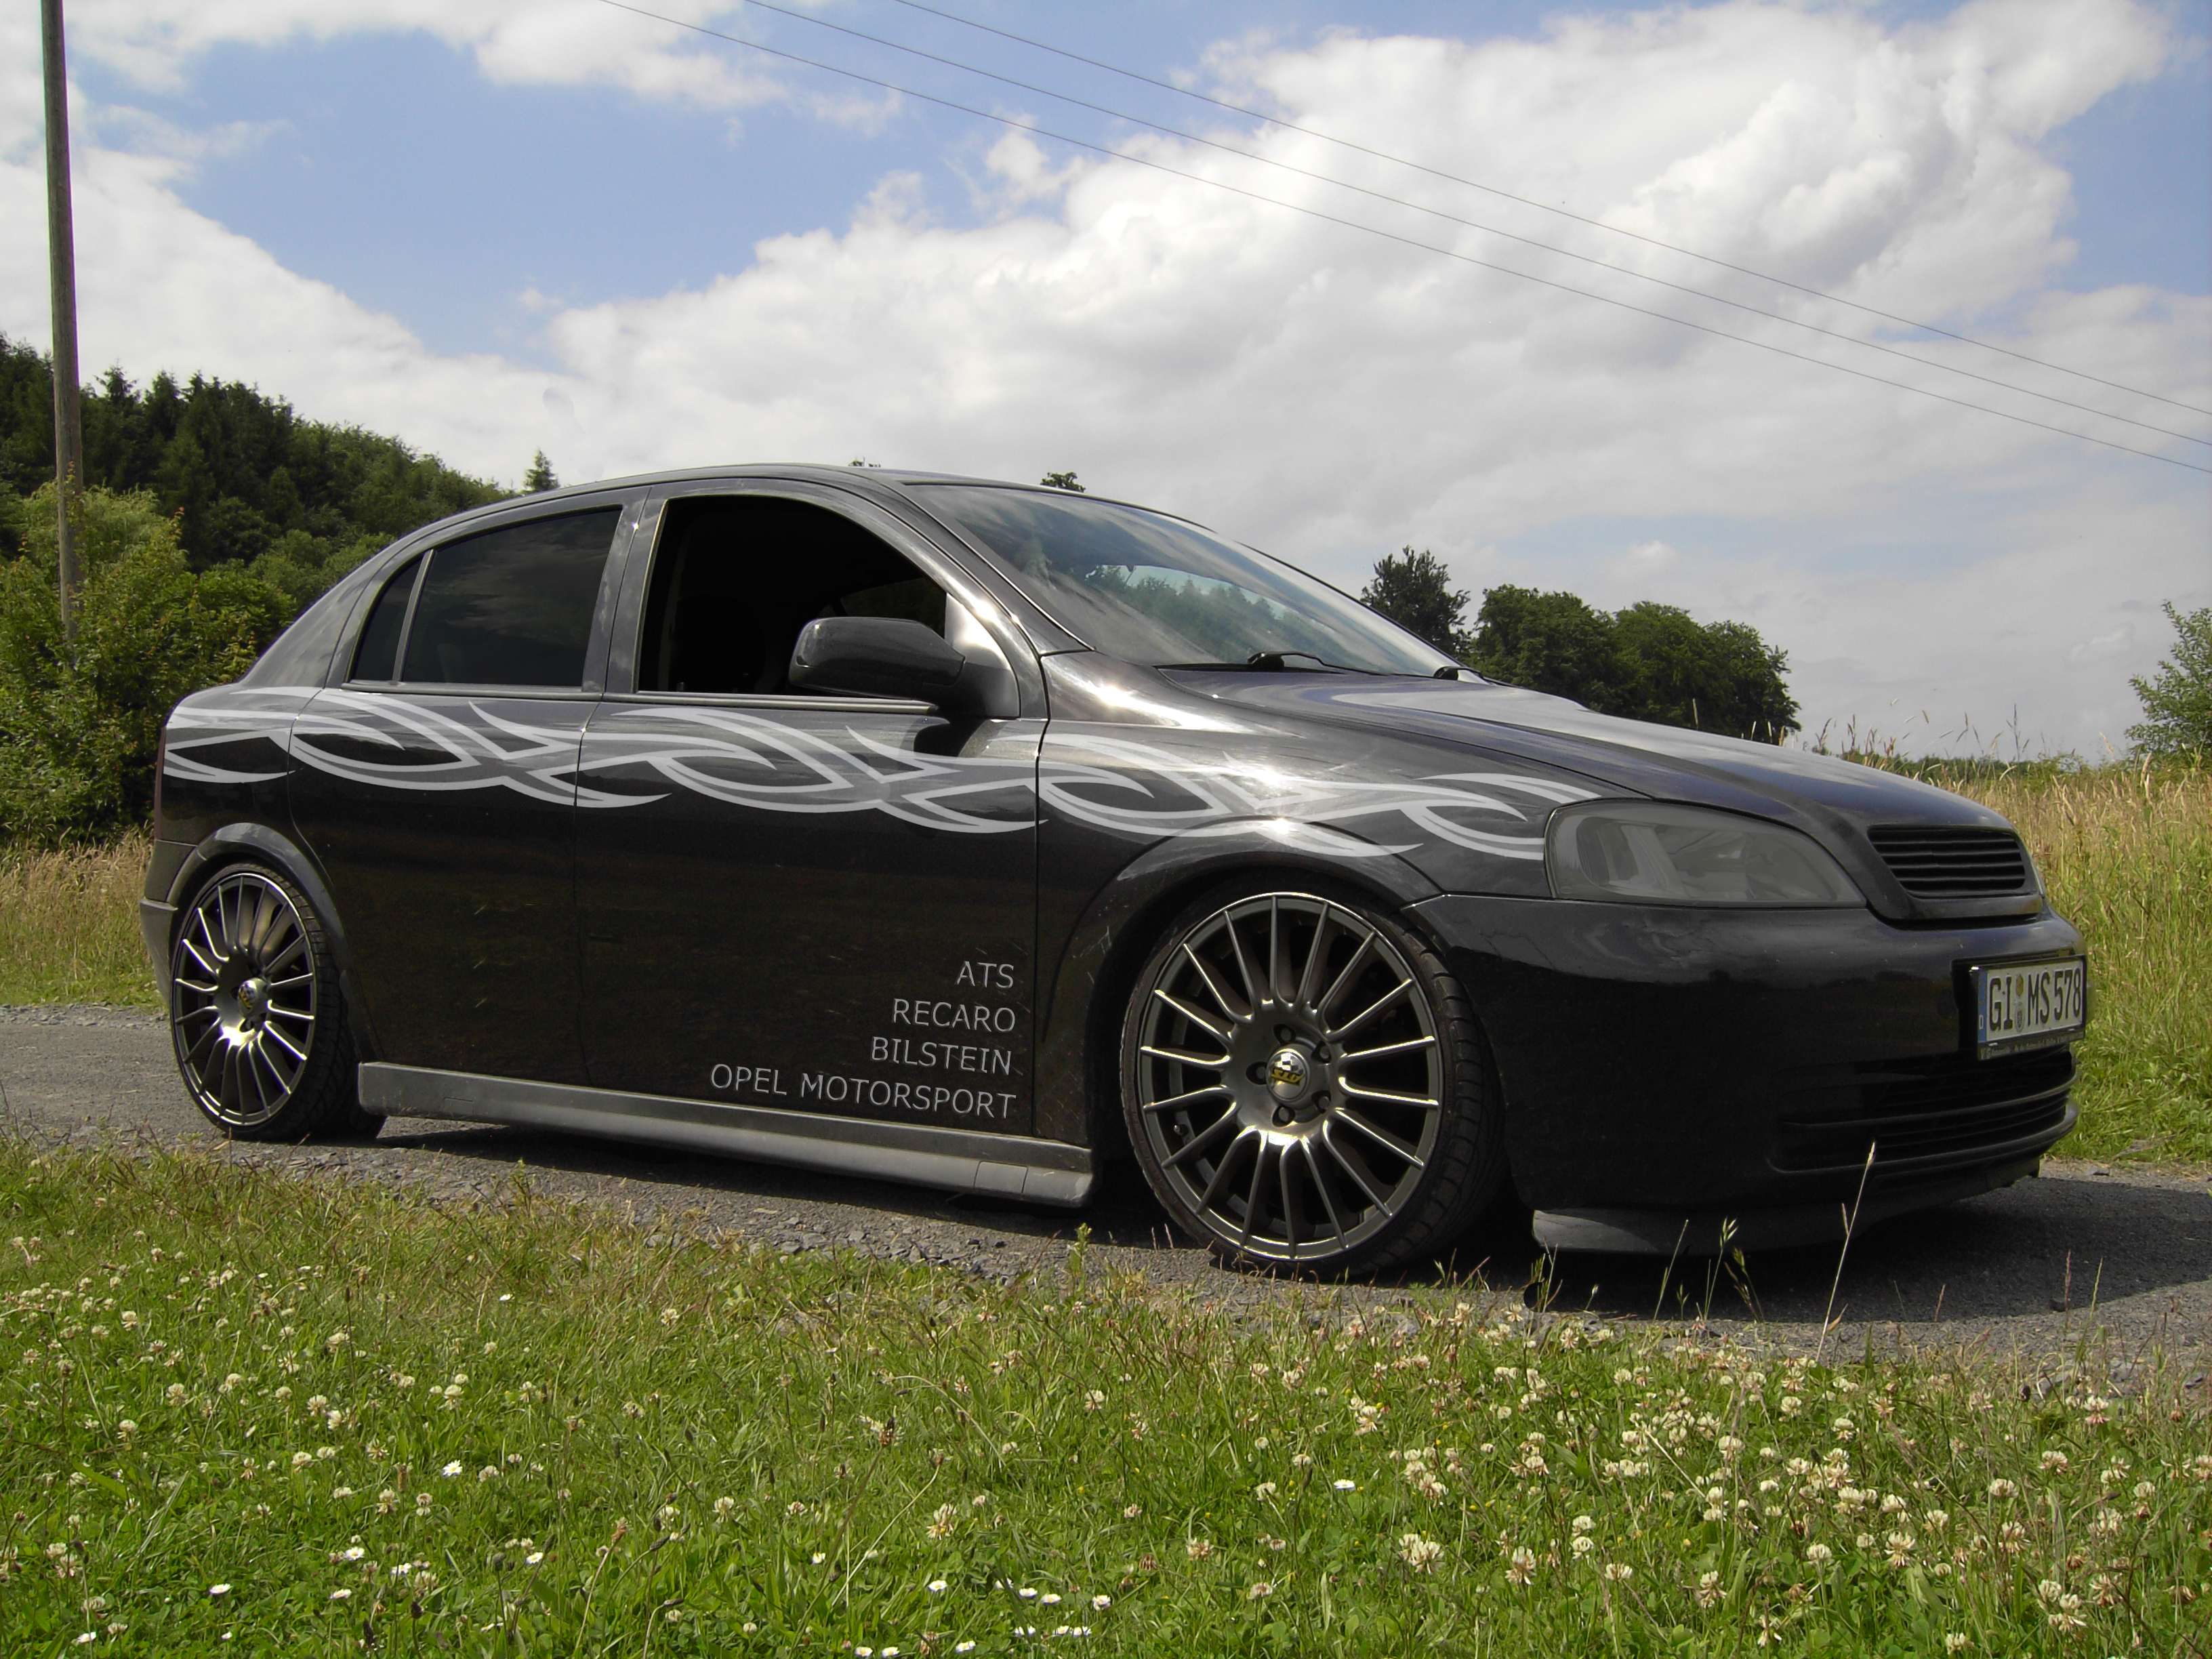 Wheels of Opel Astra G Tuning, body kit, cluch, tyres, spoilers, turbo ...